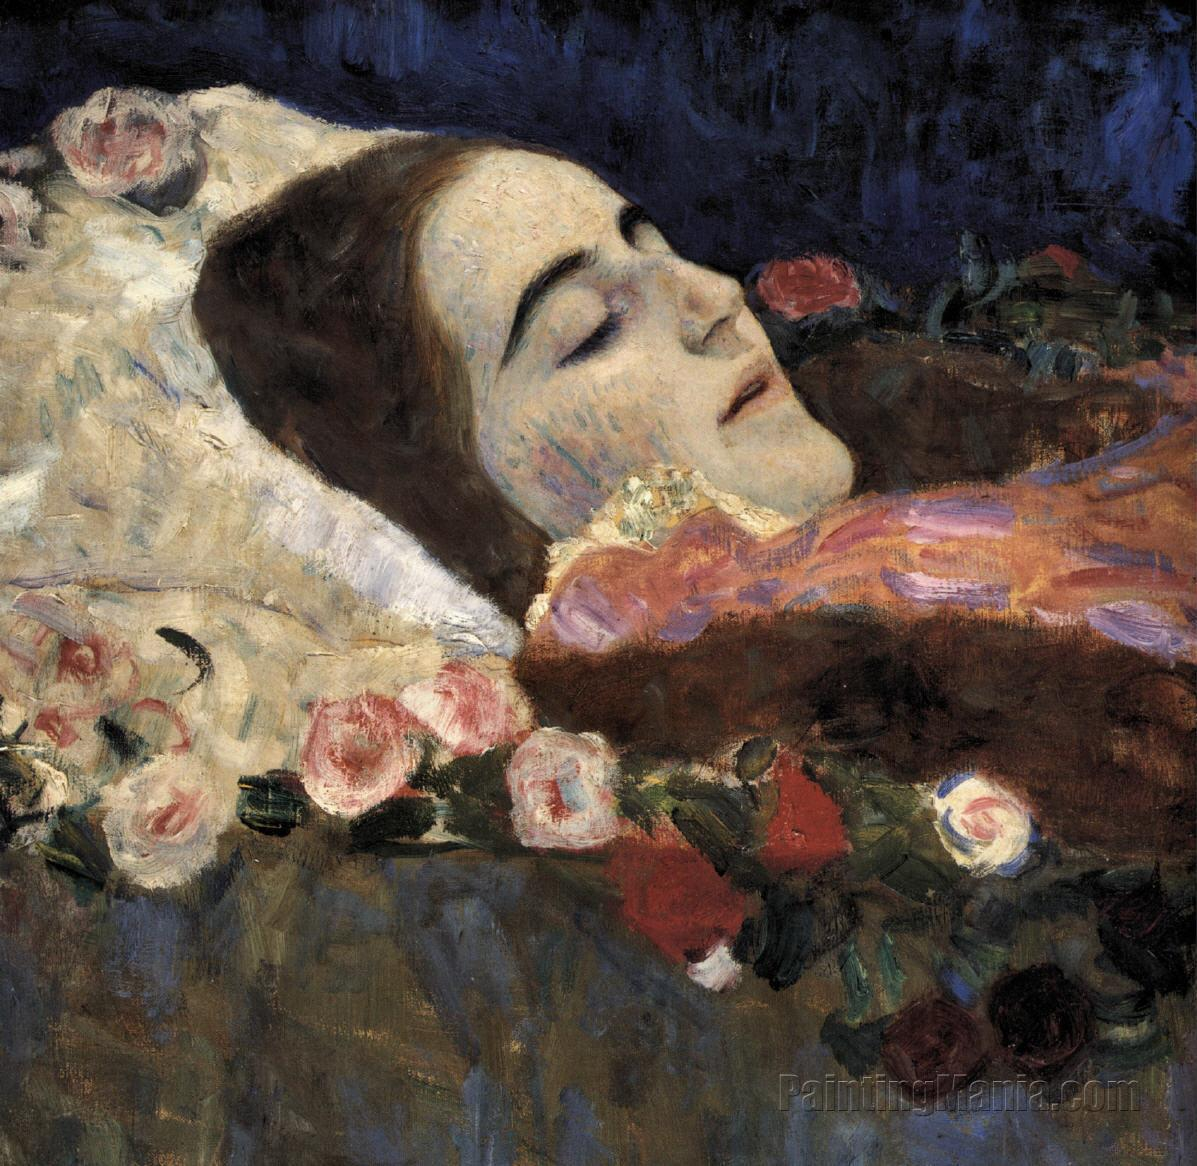 Ria Munk on Her Deathbed